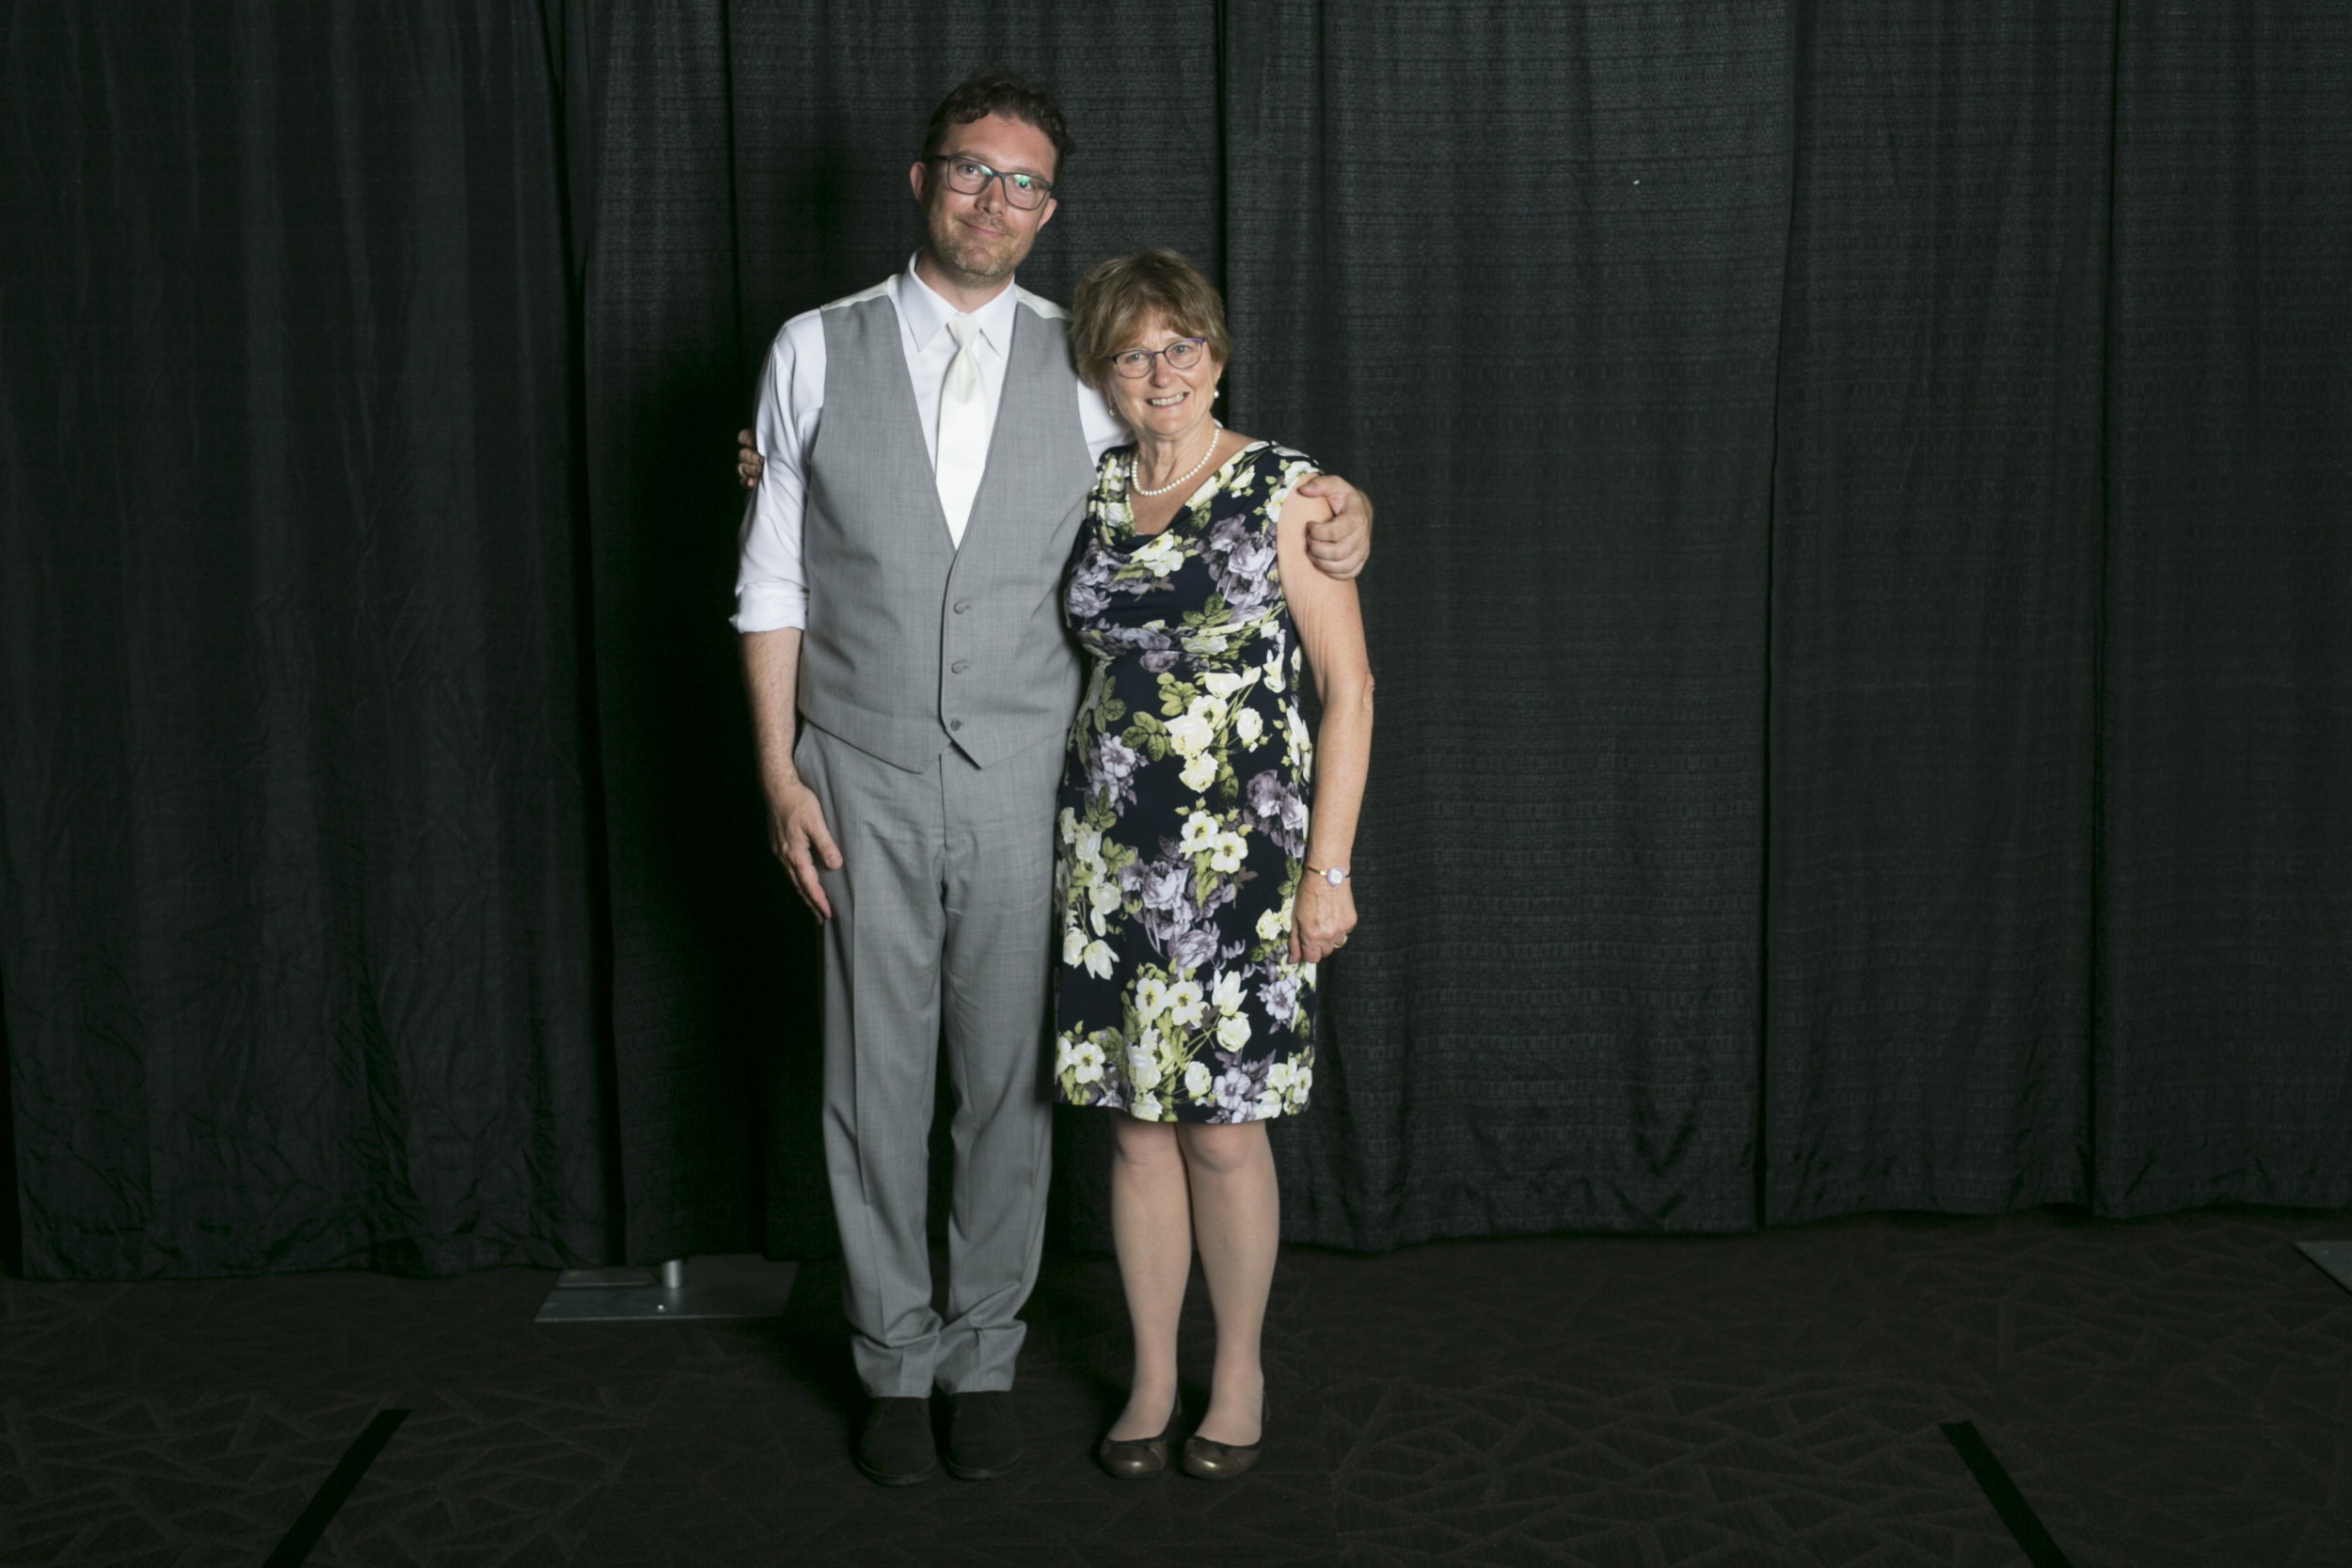 wedding photo booth-90.jpg